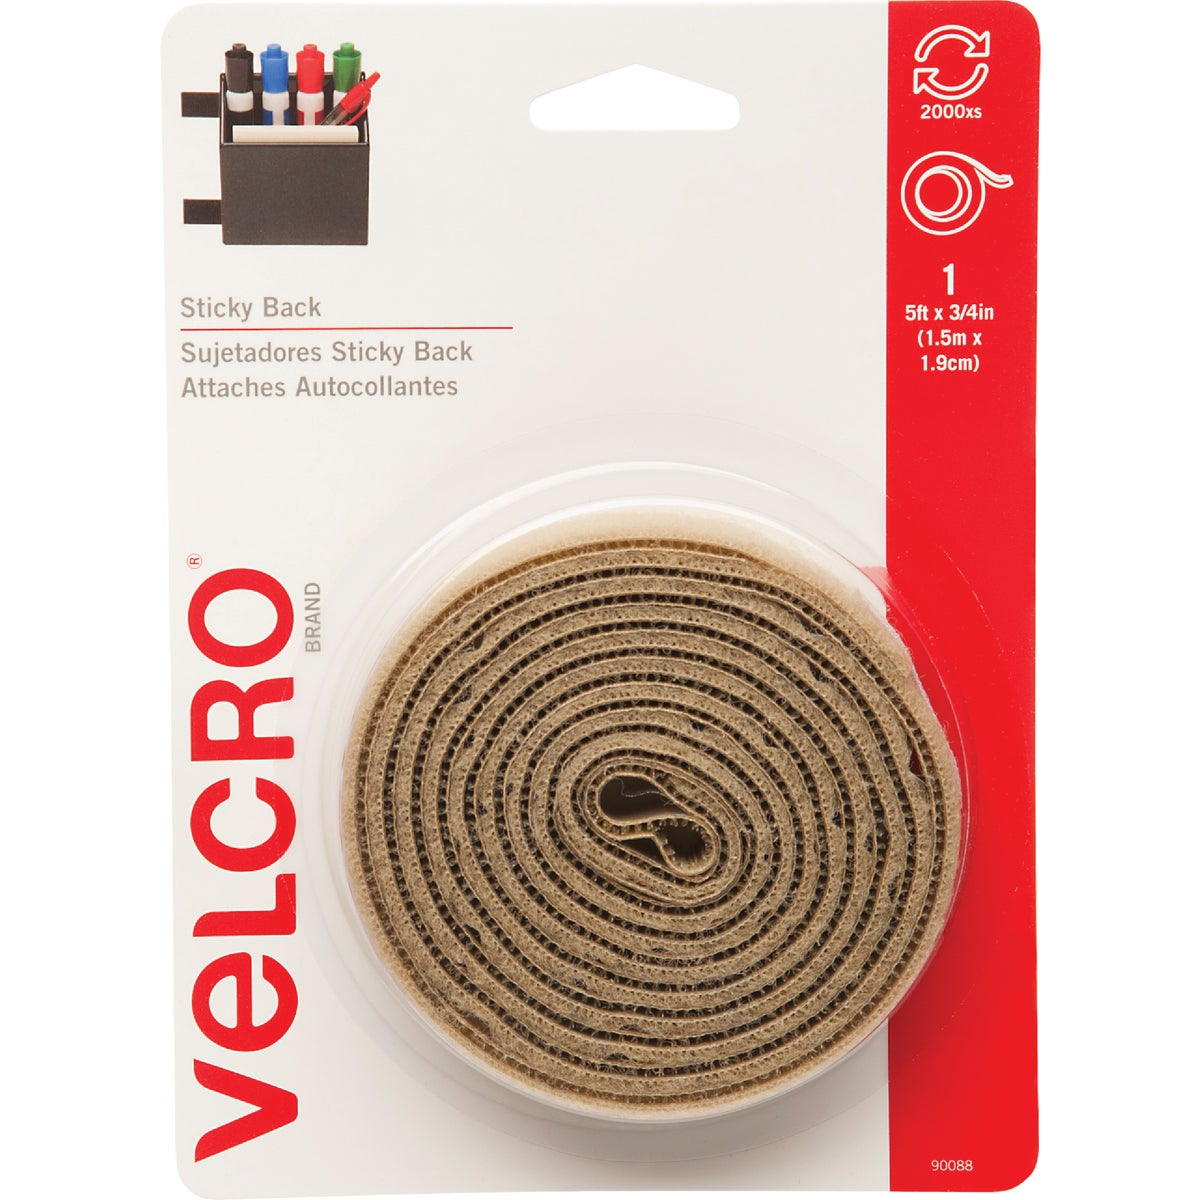 5' BGE ADHESIVE FASTENER - 90088 by Velcro Usa